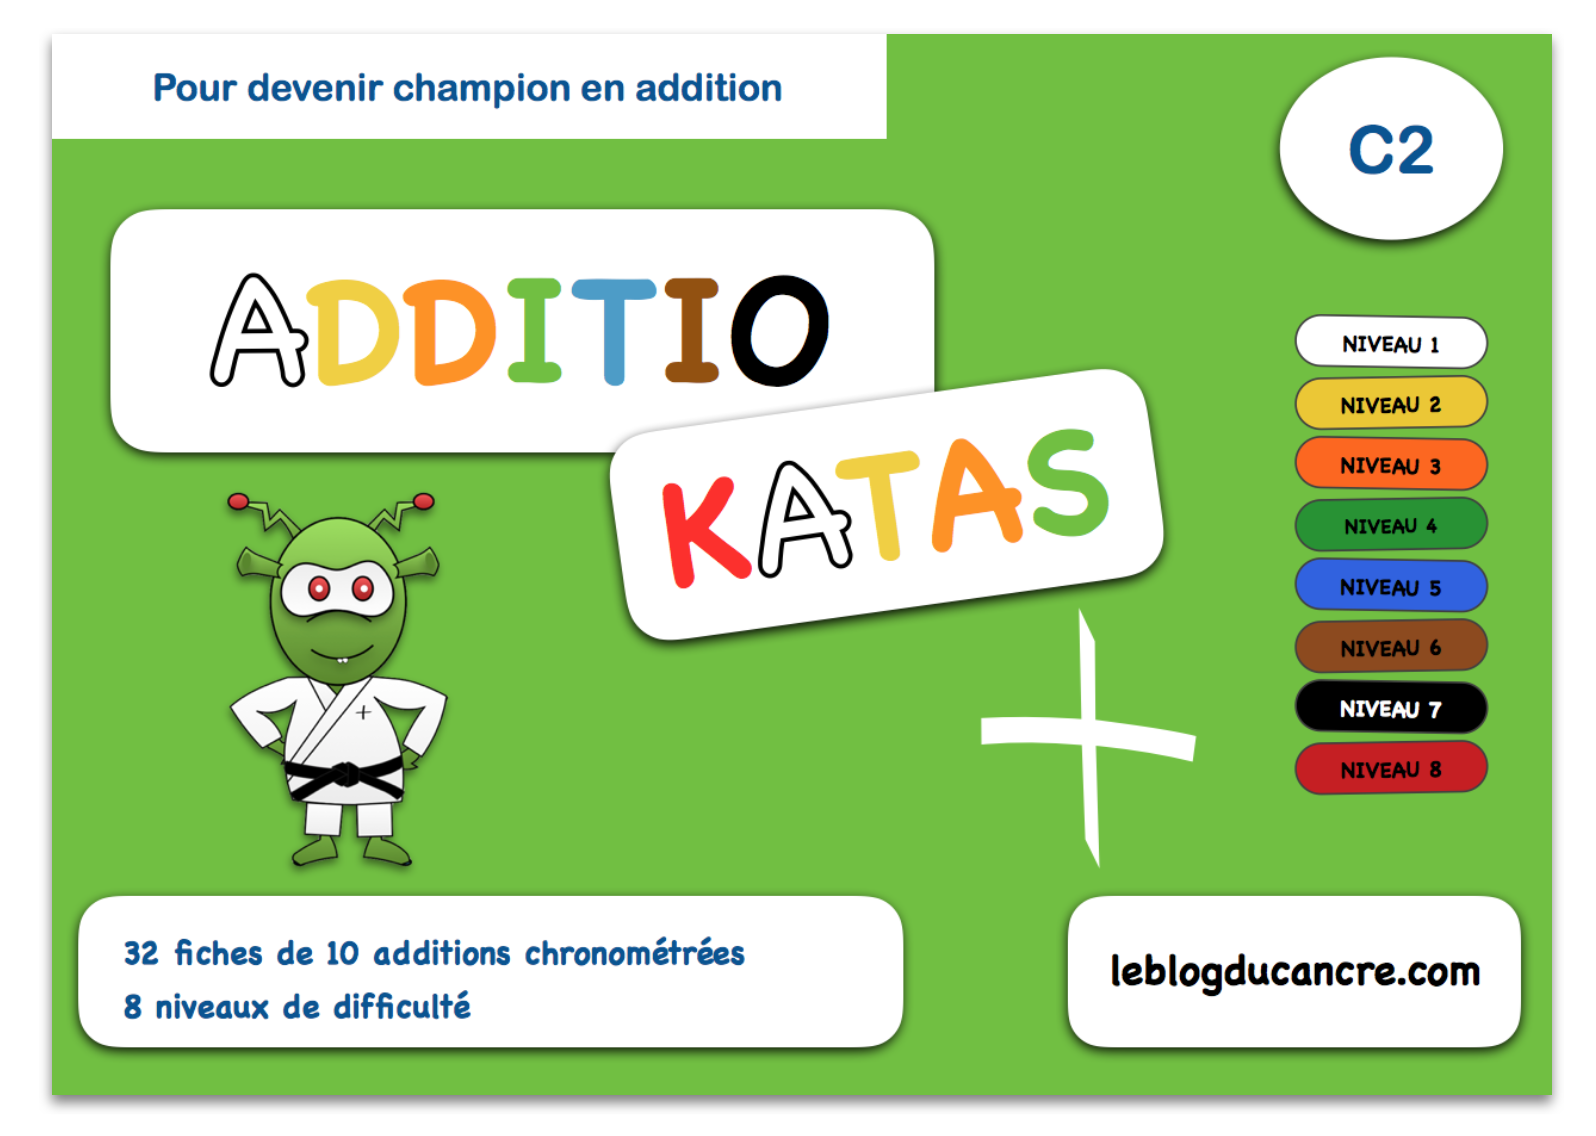 Additiokatas